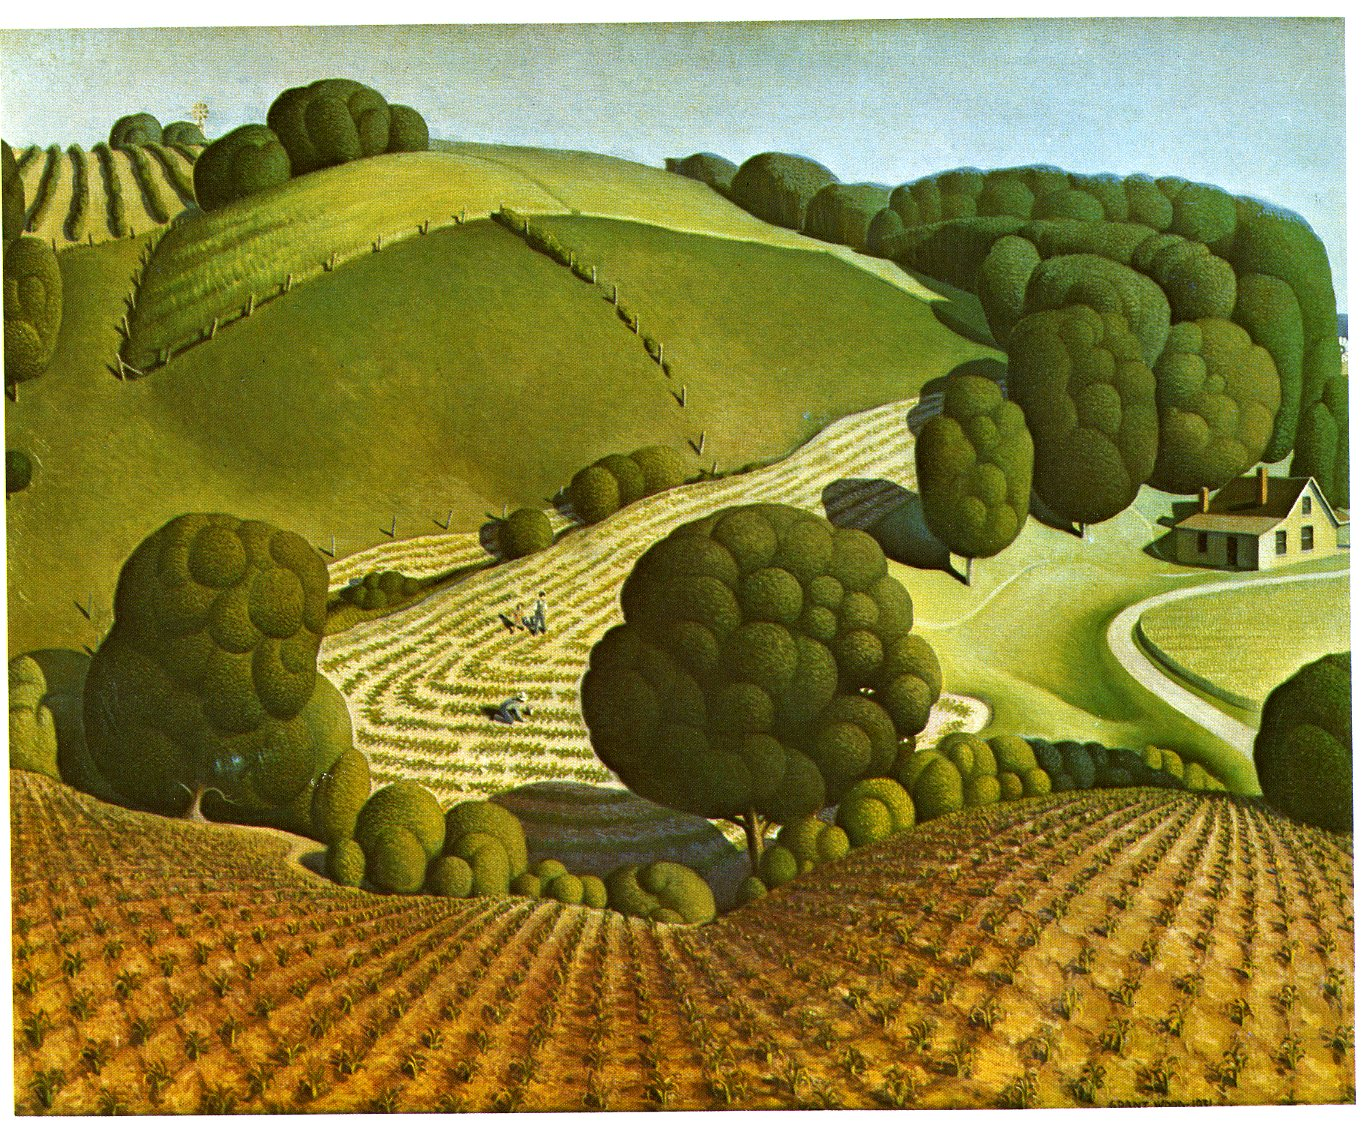 grant wood Famous for its grant wood collection and studio, the crma has more than 5,000 works of art spanning 2,000 years, including works by marvin cone, bertha jaques, james swann, malvina hoffman, and mauricio lasansky.